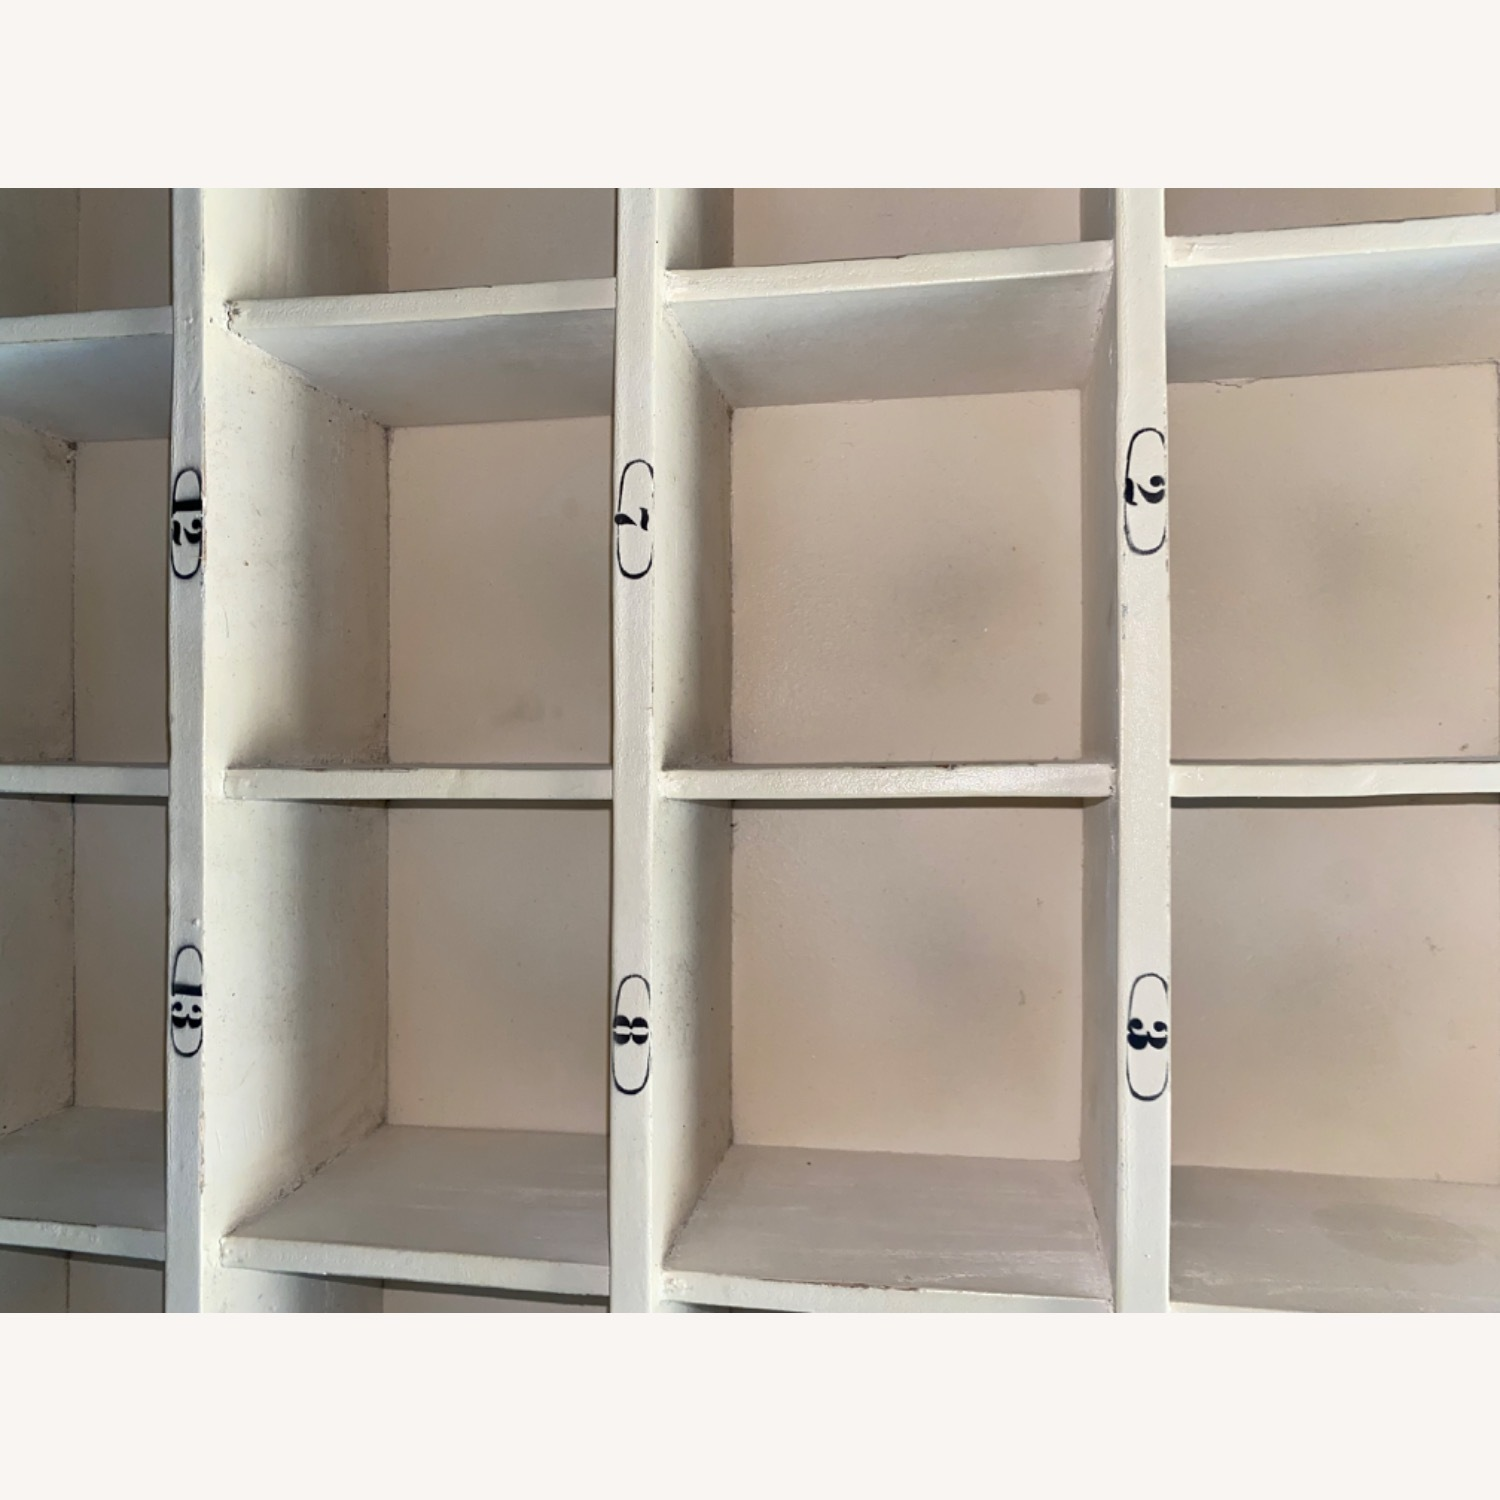 Pottery Barn Cubby Storage - image-24